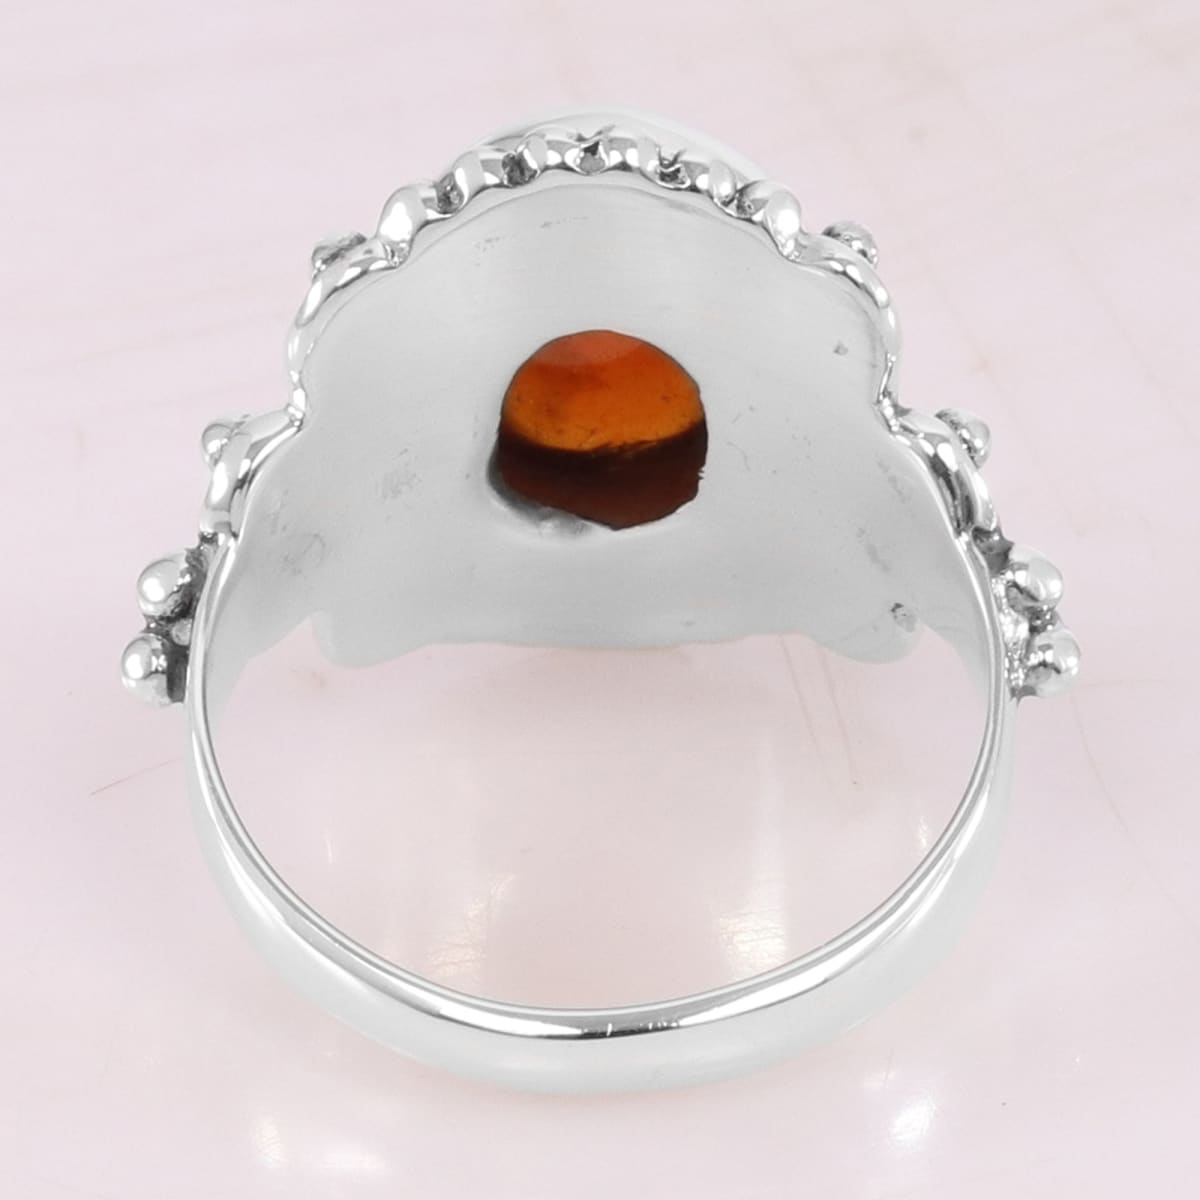 Natural Garnet Ring 925 Sterling Silver Hessonite Bohemian Style Handmade Statement - by Rajtarang